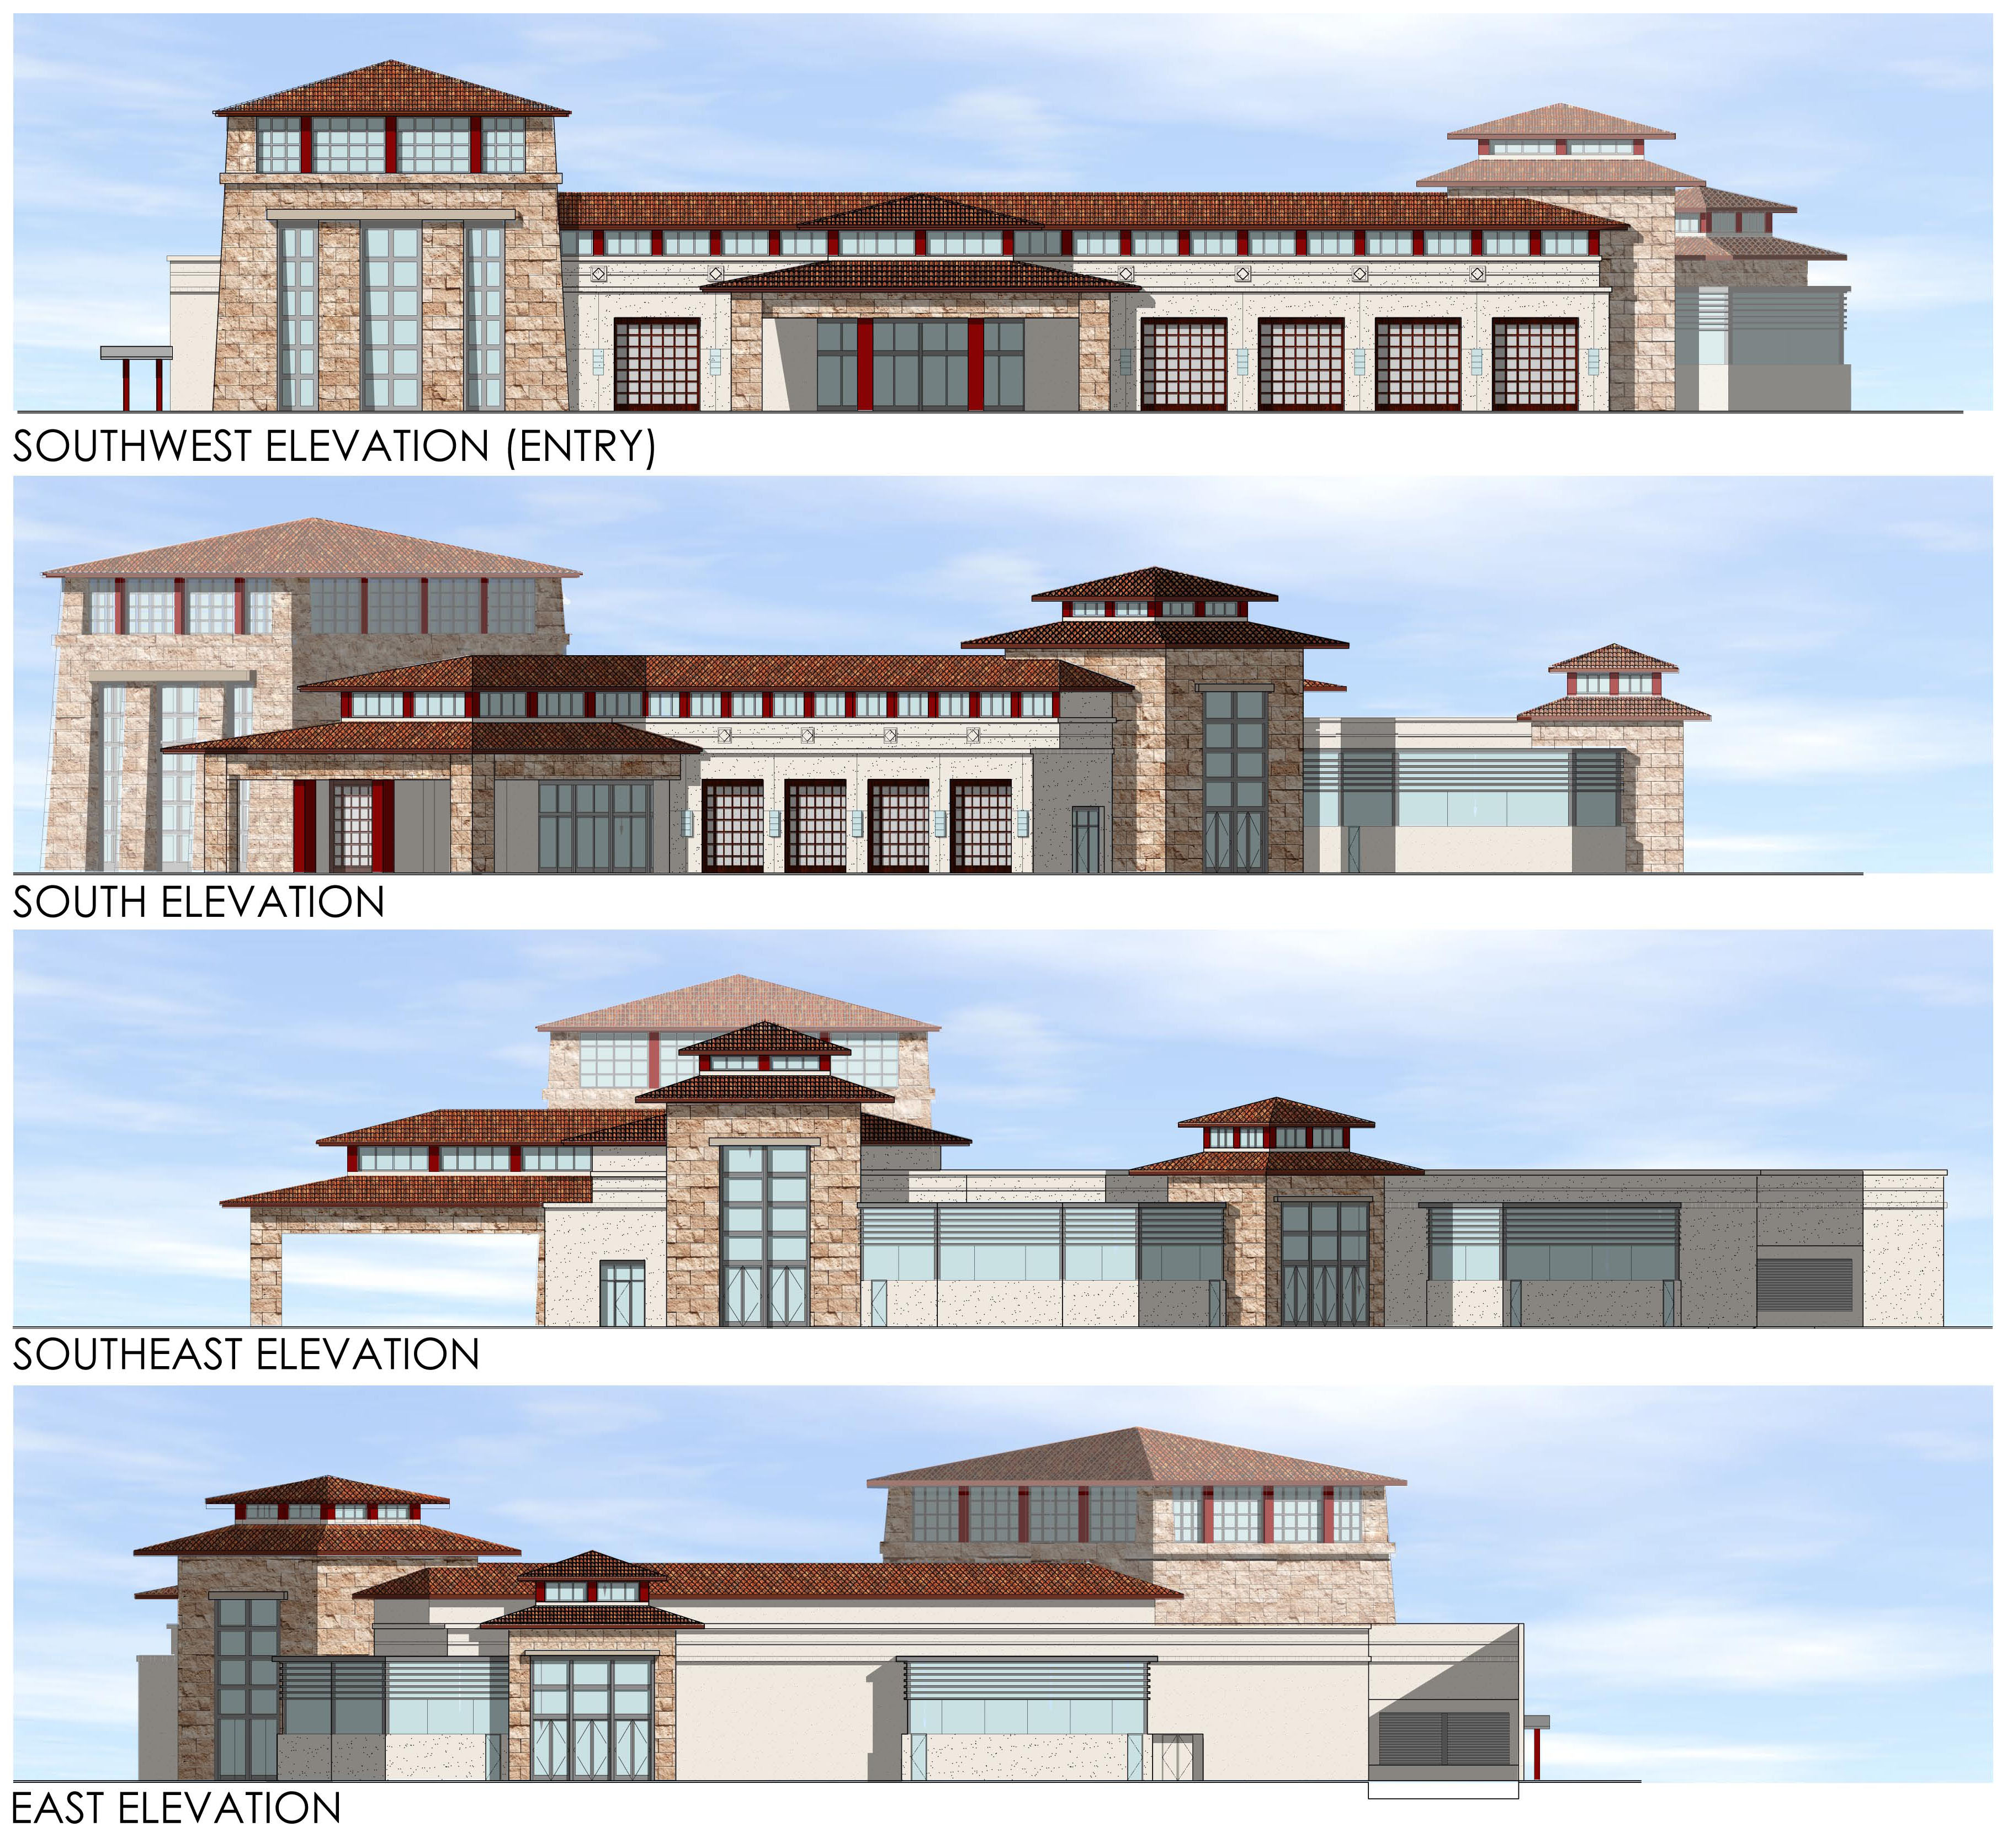 bay 101 new casino elevations